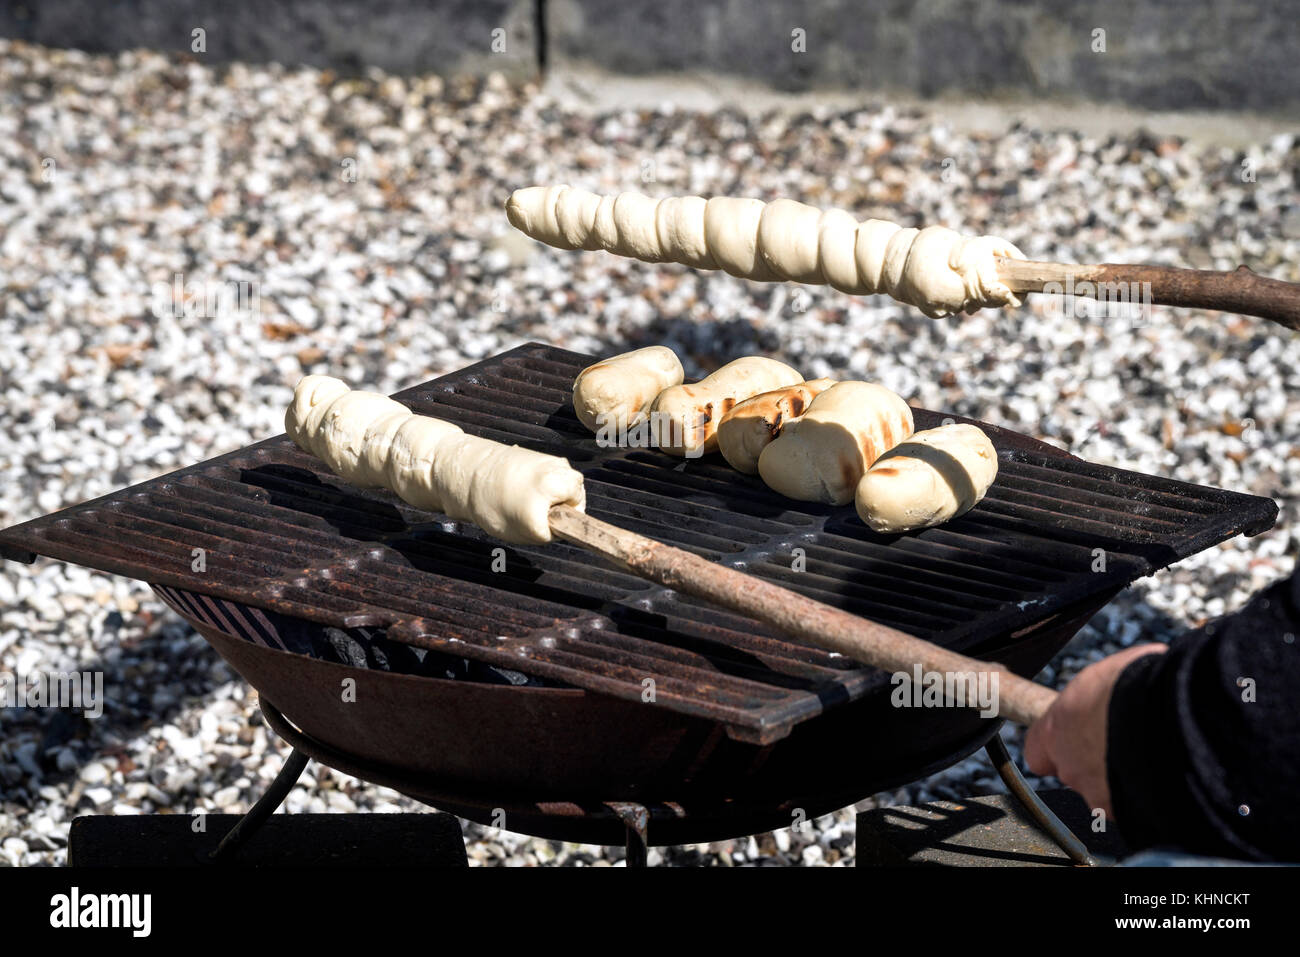 Bread on an outdoor grill with raw dough on a stick ready to be baked - Stock Image